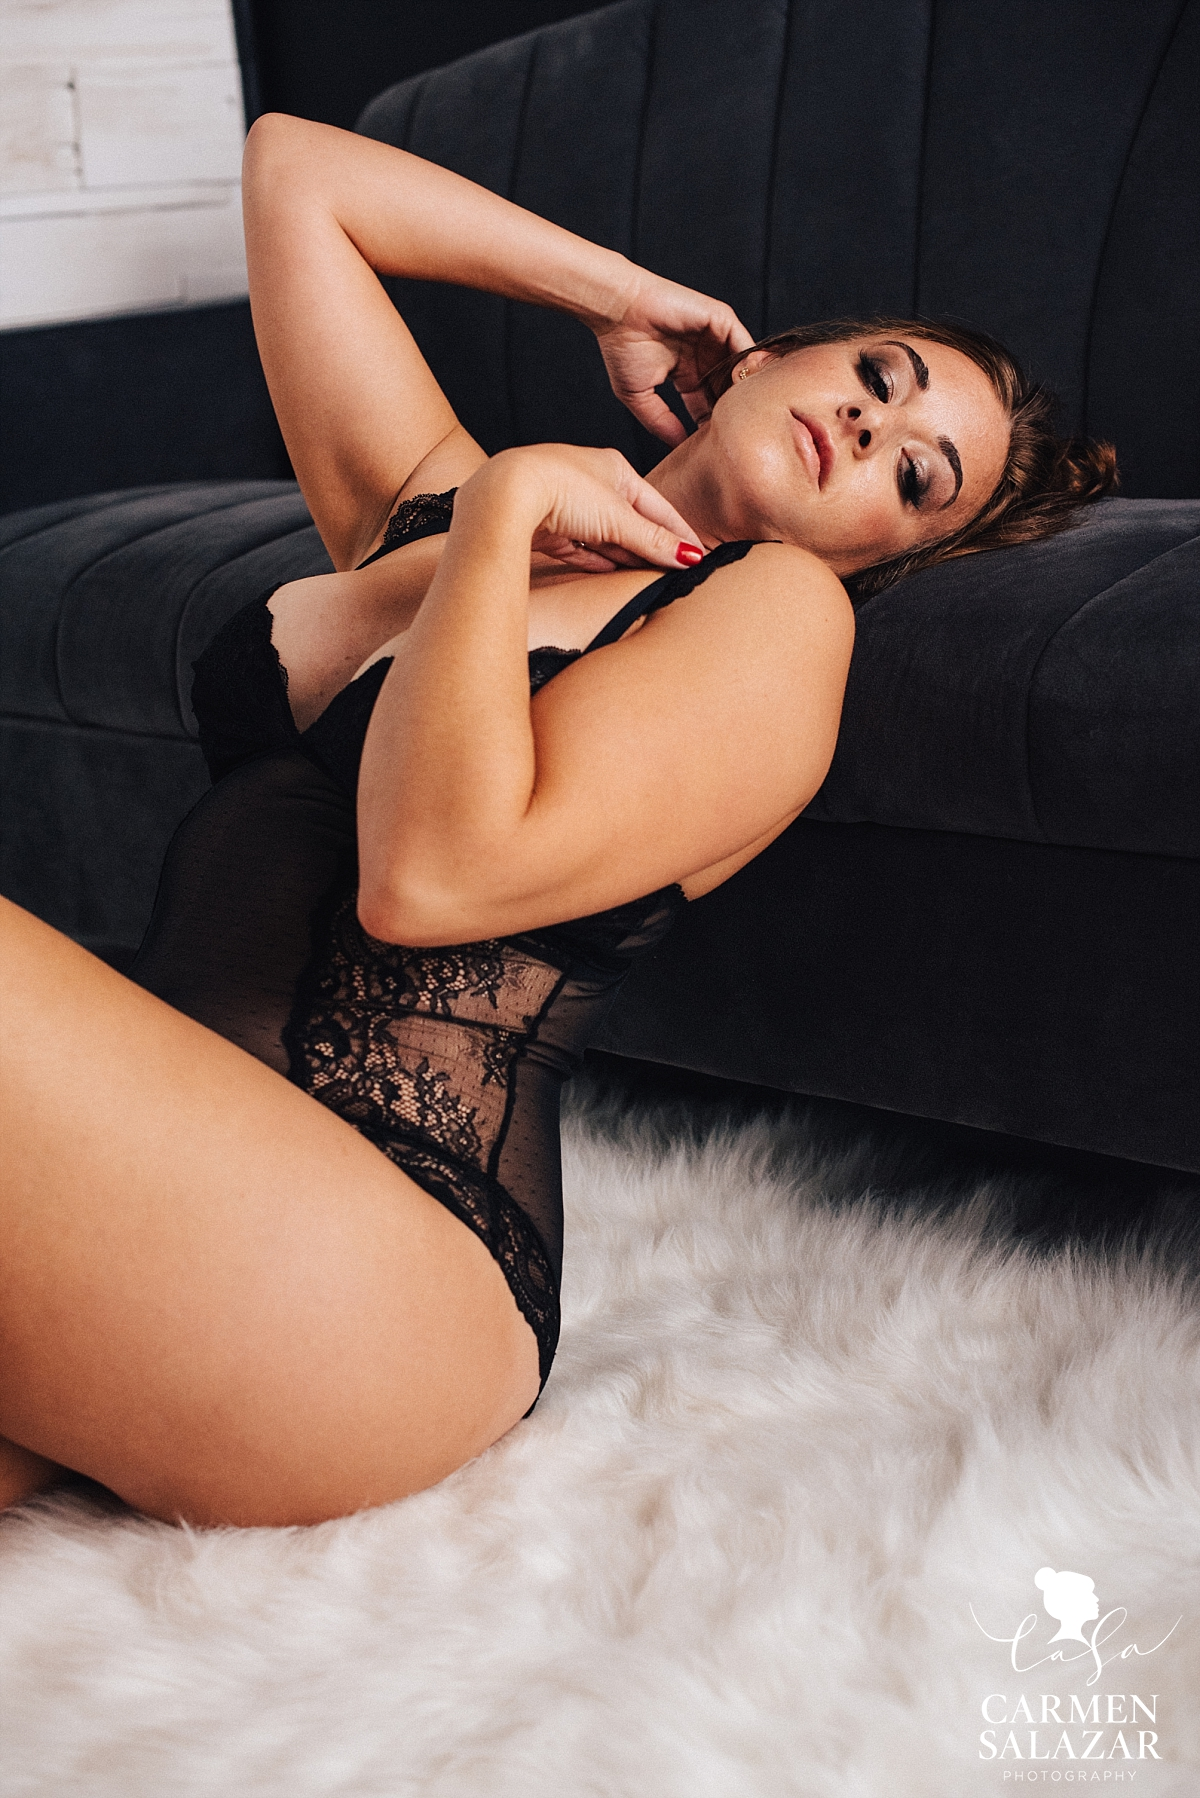 woman in black body suit with curves in boudoir photo by Carmen Salazar